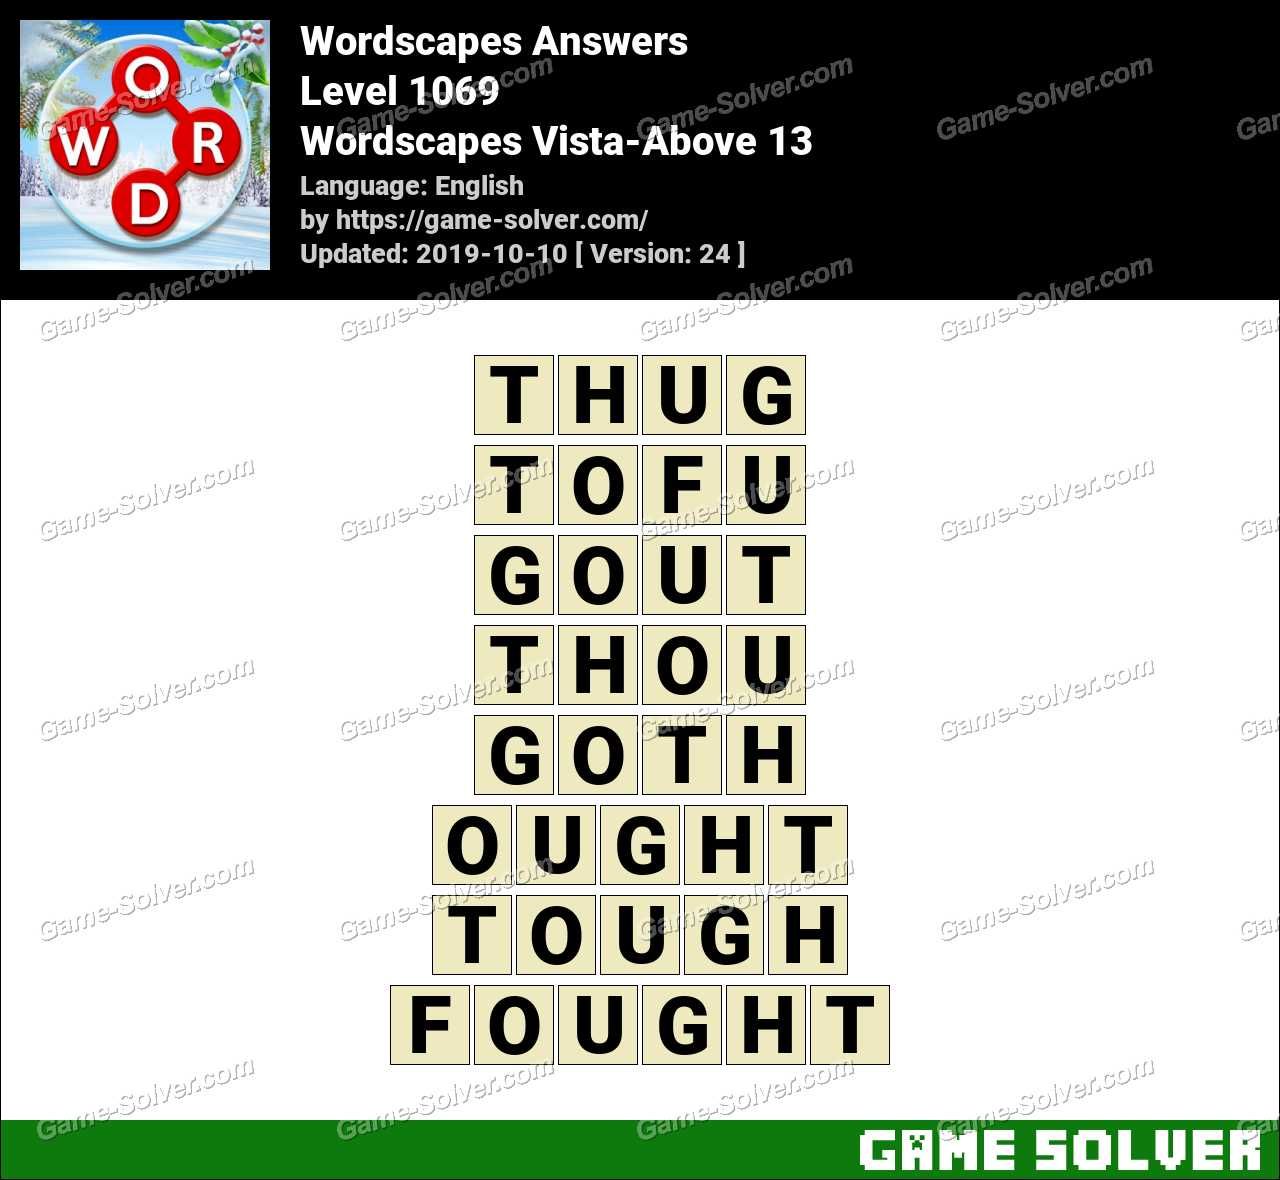 Wordscapes Vista-Above 13 Answers